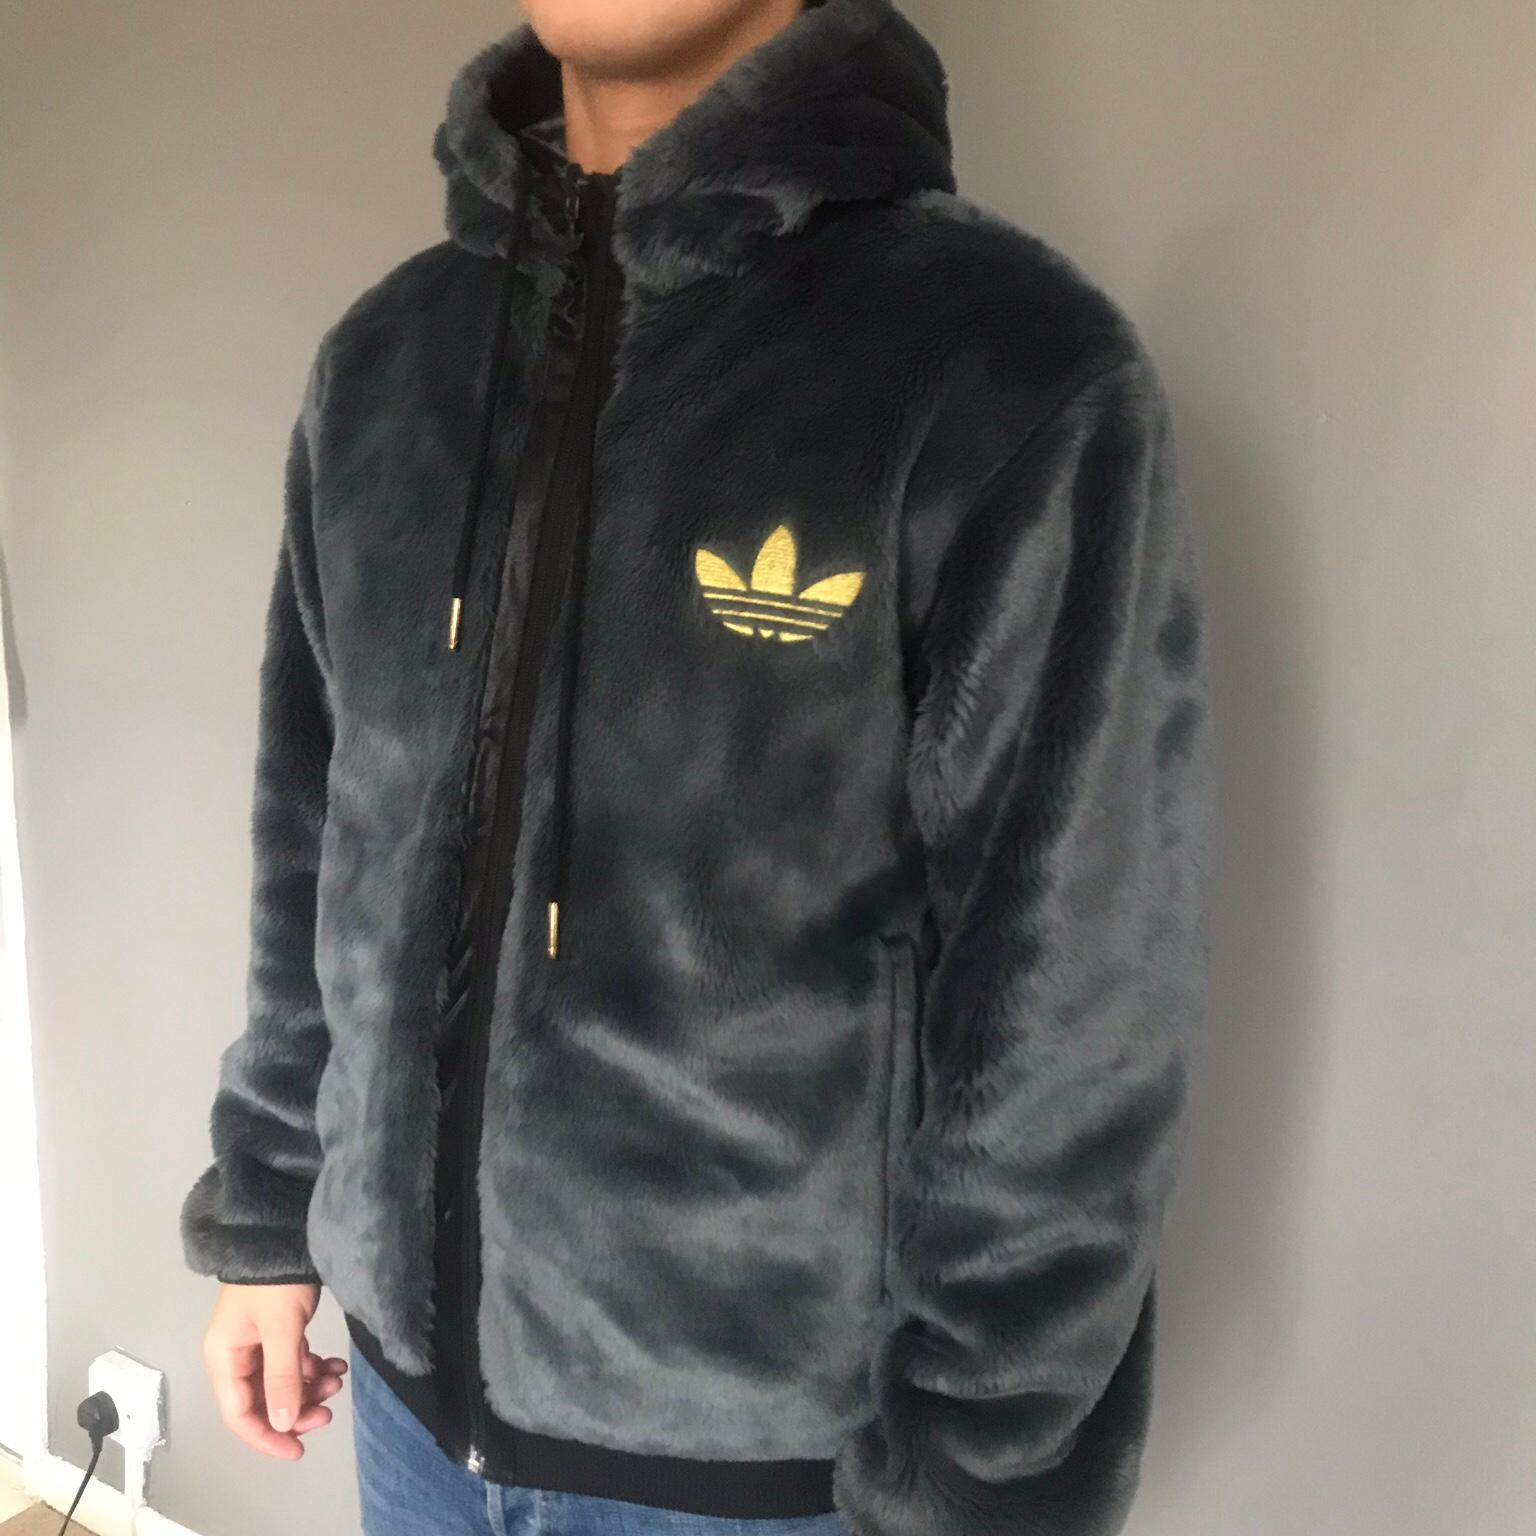 paquete Funeral sin embargo  Adidas Chile 62 reversible jacket in M23 Manchester for £50.00 for sale |  Shpock